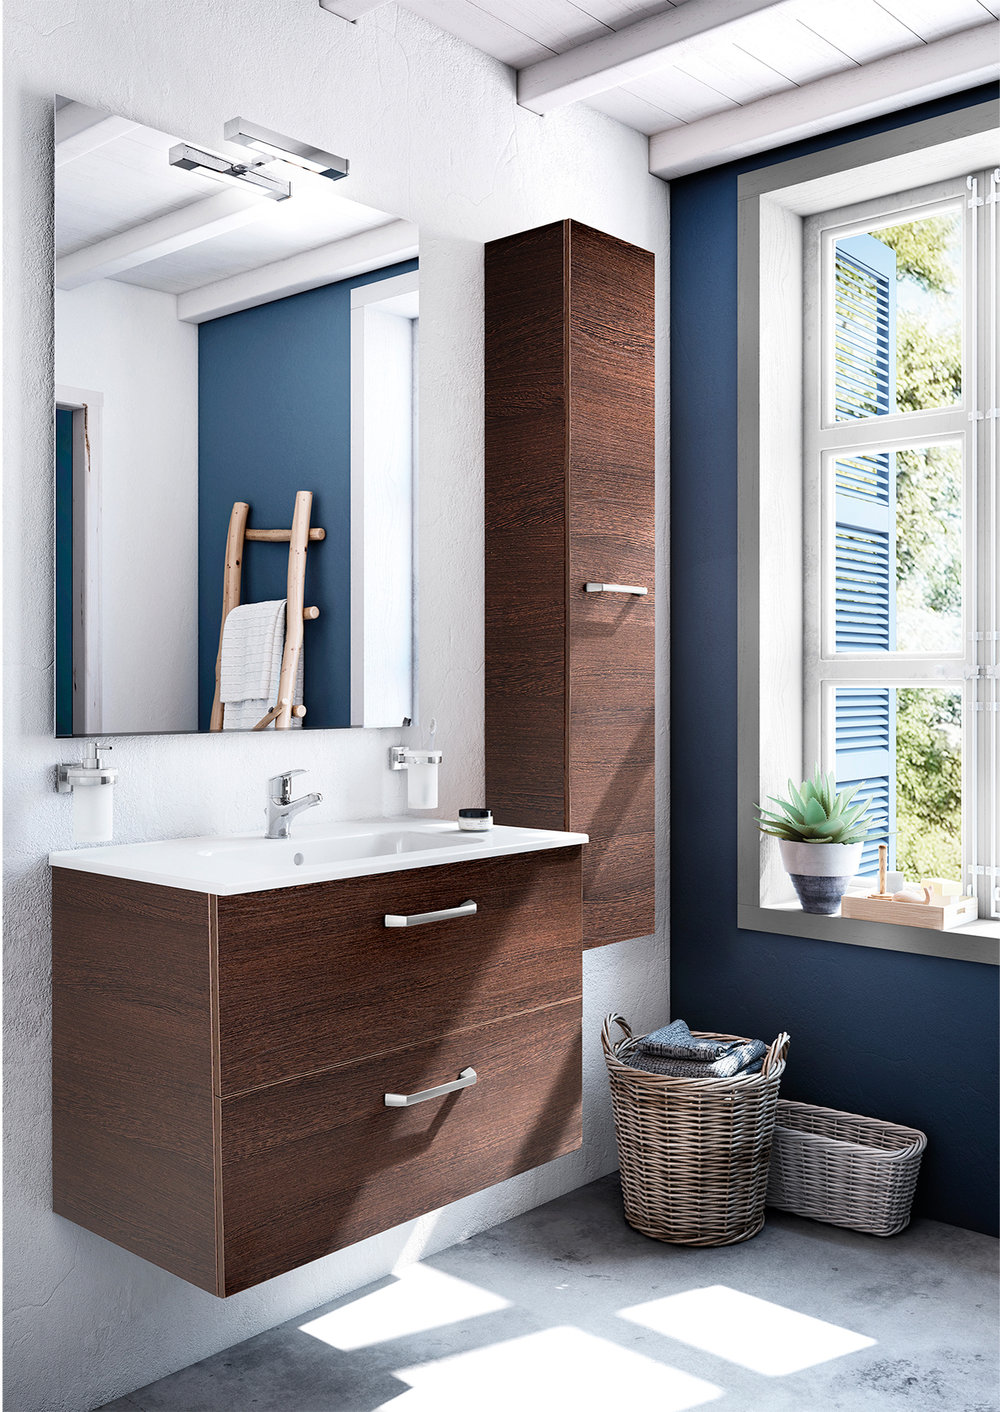 ASTER WALL-MOUNT VANITY WITH DRAWERS CEDAR WOOD VENEER - Finish: Textured MelamineDesign: Cedar Wood VeneerWall-mounted24